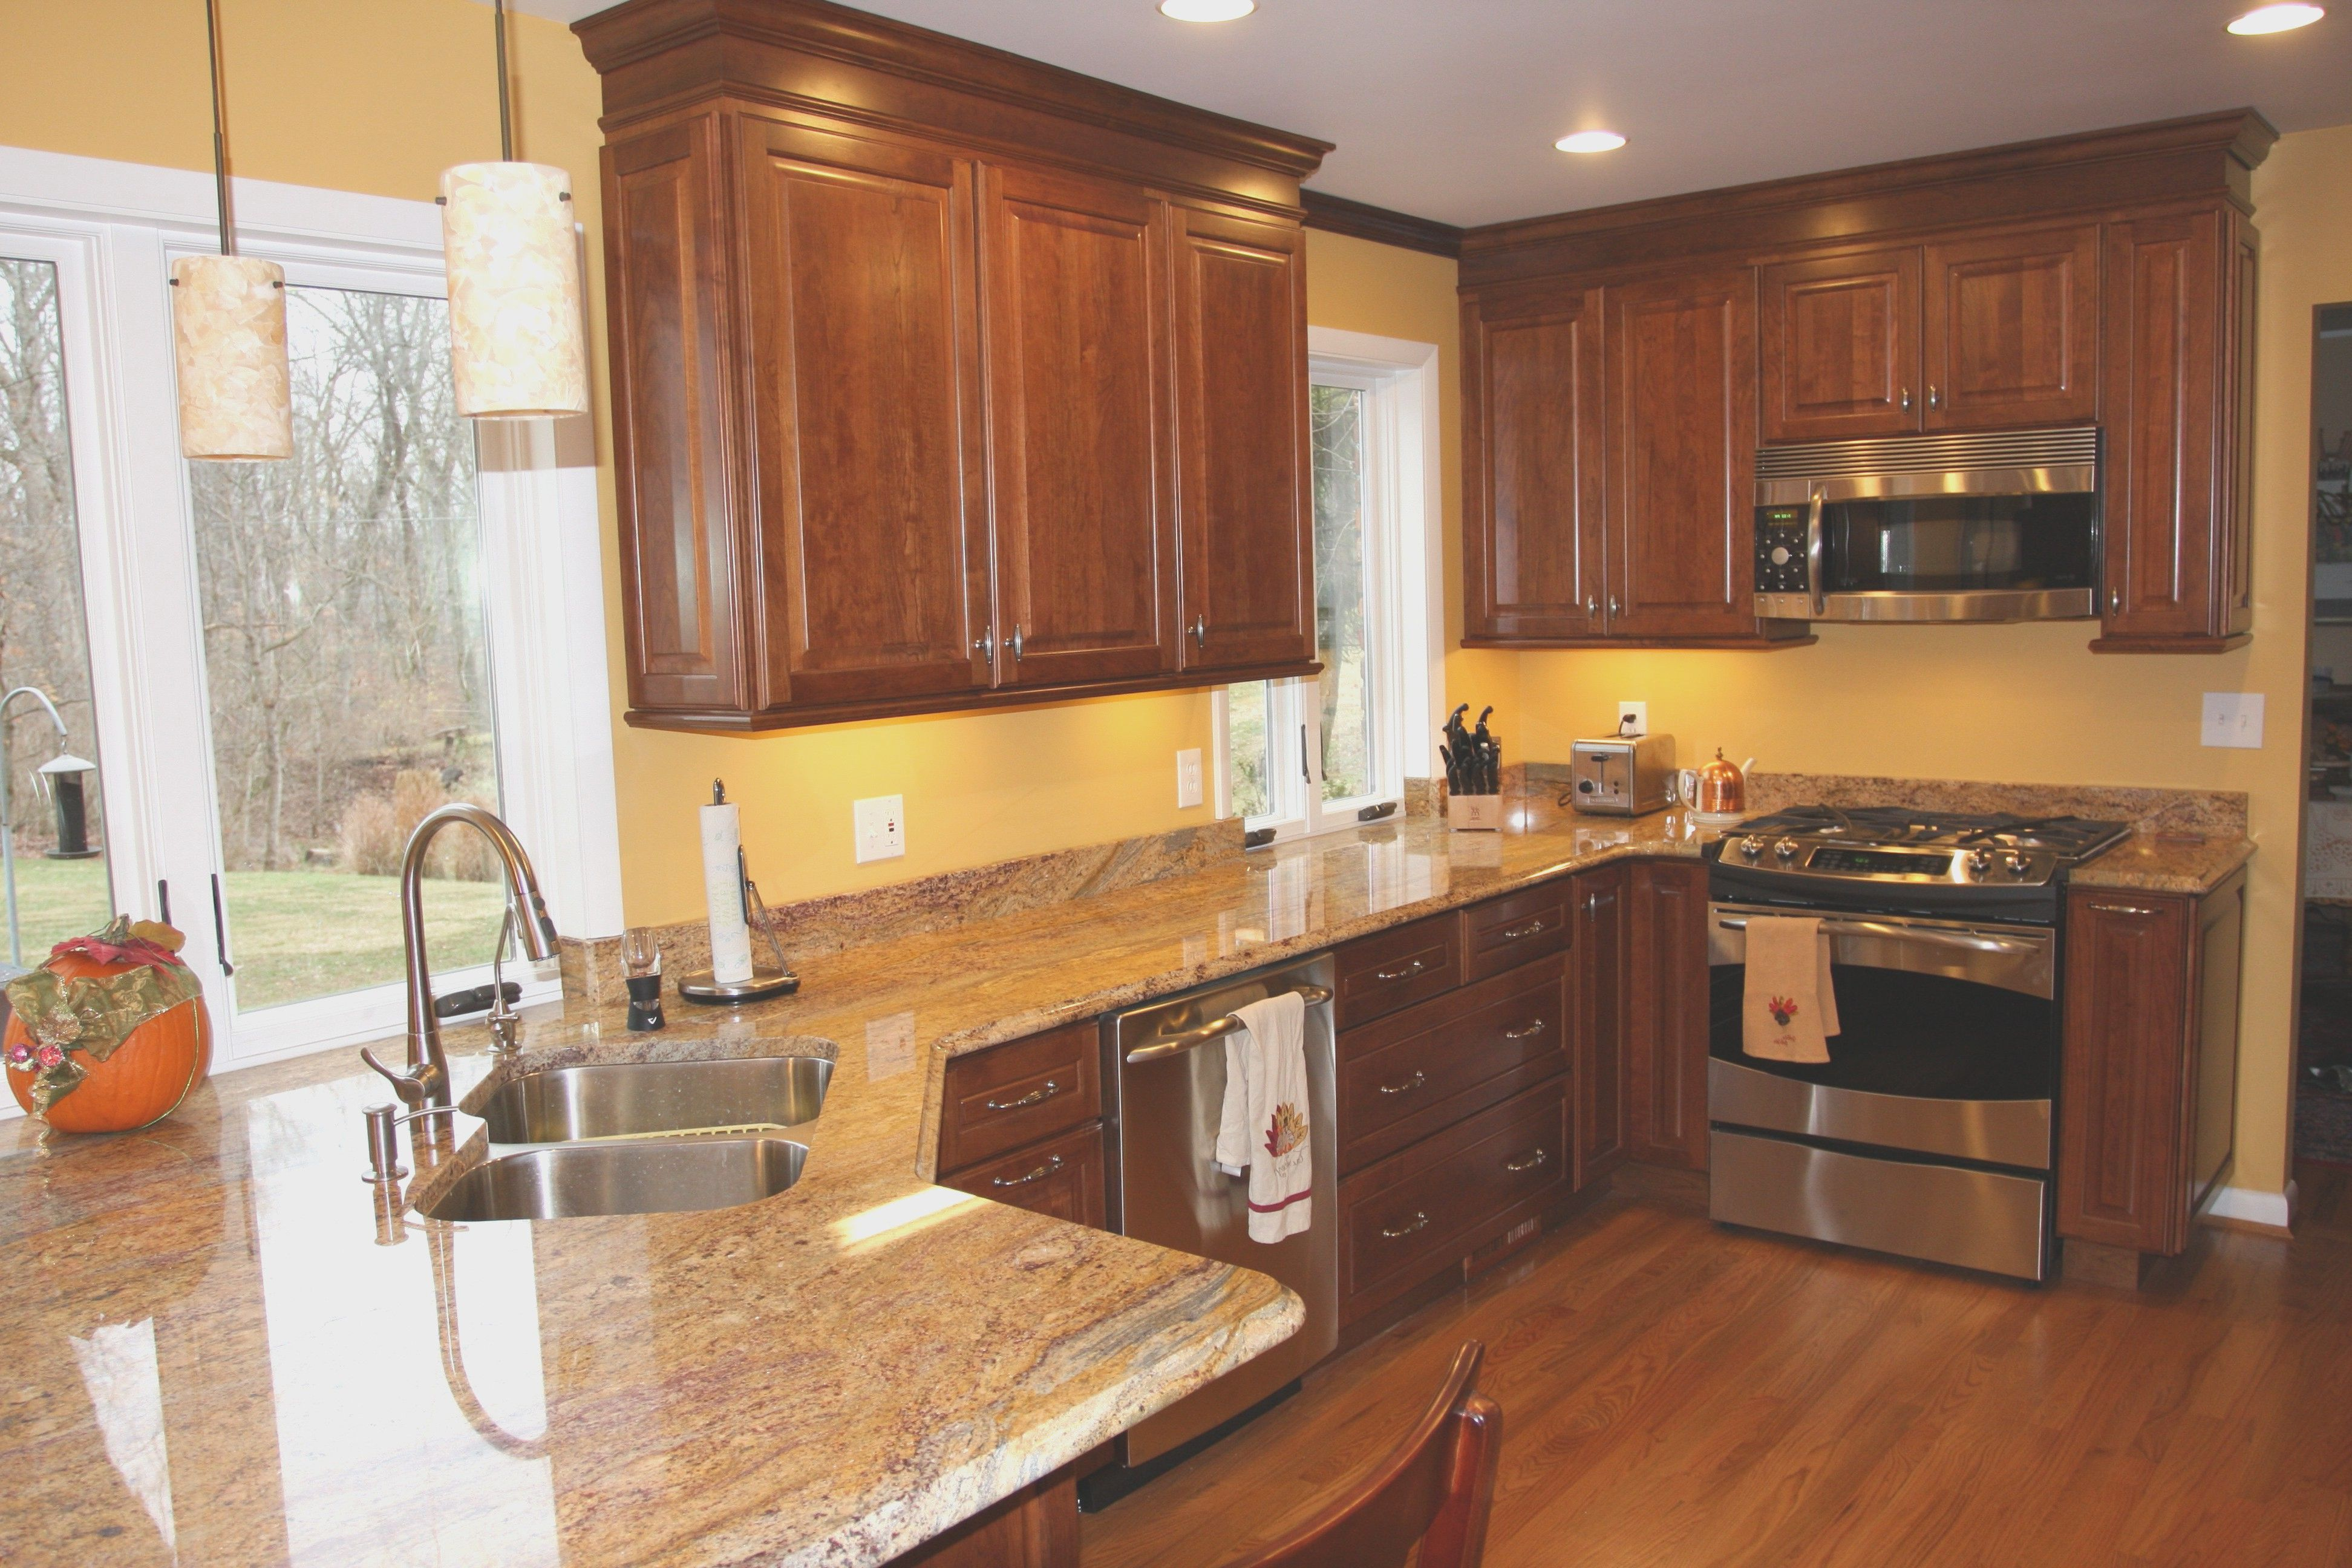 Granite Countertop Fantastic Cherry Kitchen Cabinets With Countertops Finish Peel And Stick Glass Ba Kitchen Colors Cherry Cabinets Kitchen Kitchen Wall Colors